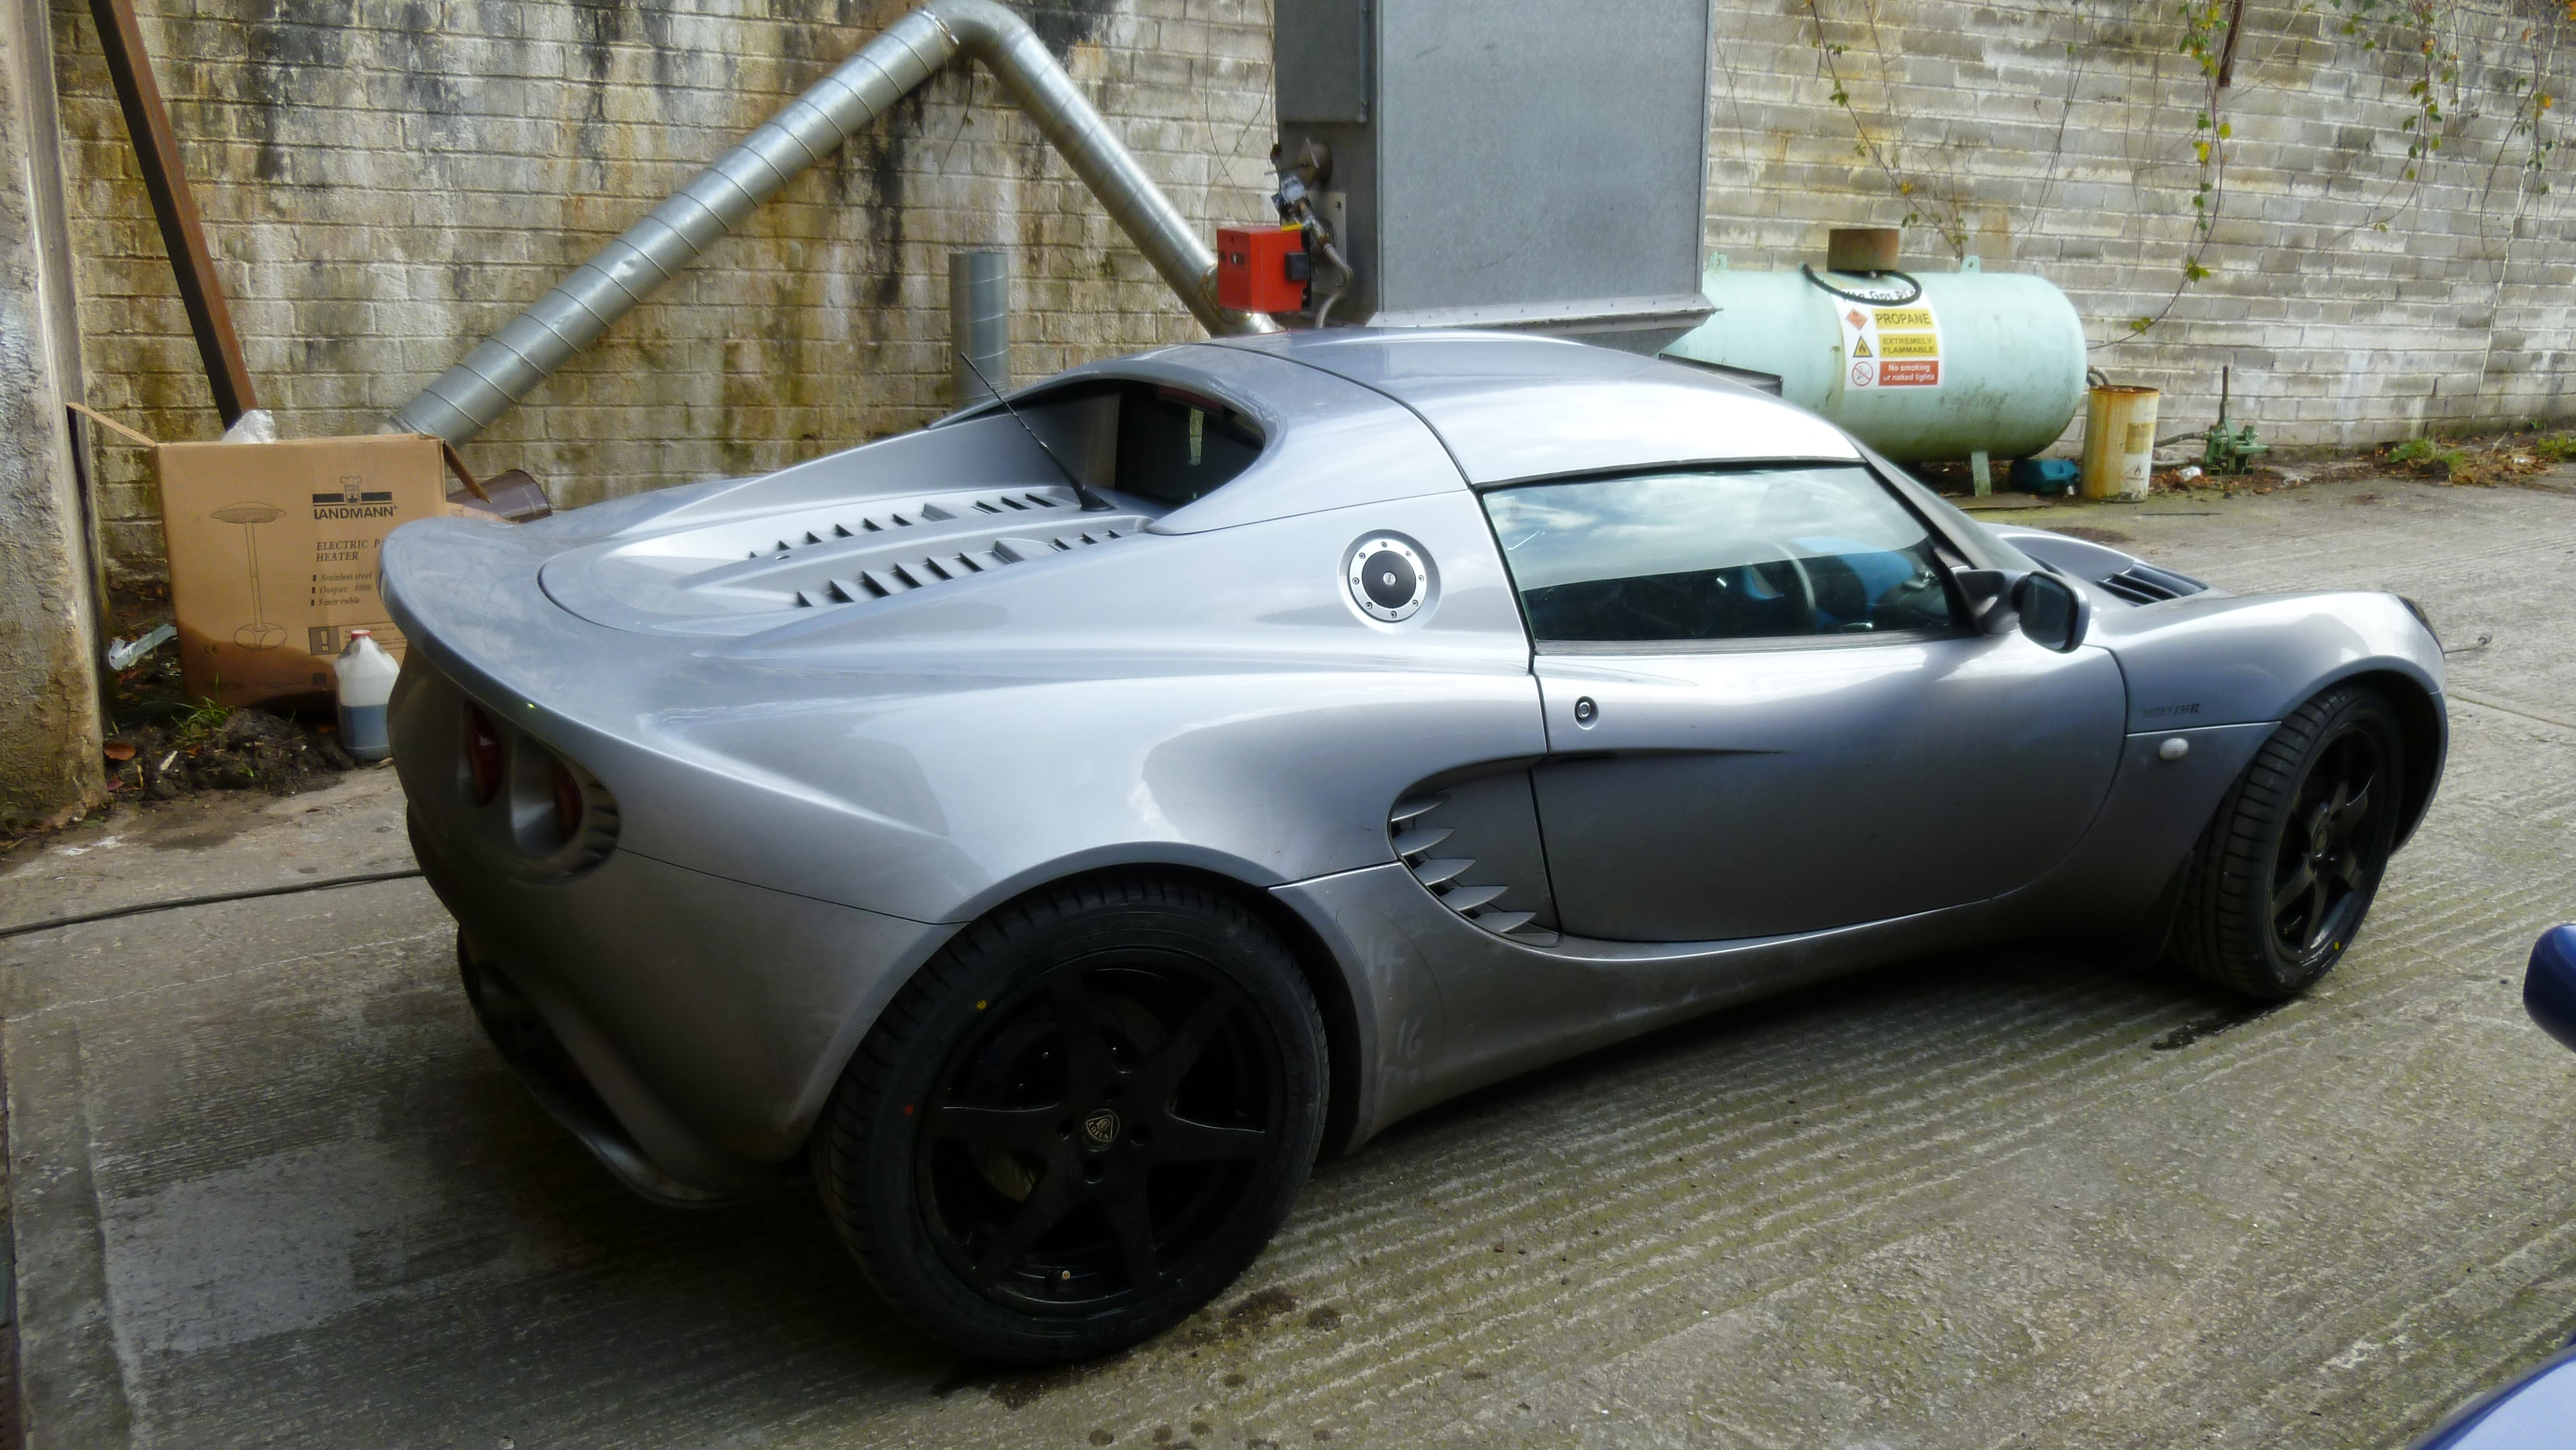 Lotus Elise 135R with optional hard top roof | Flickr - Photo Sharing!